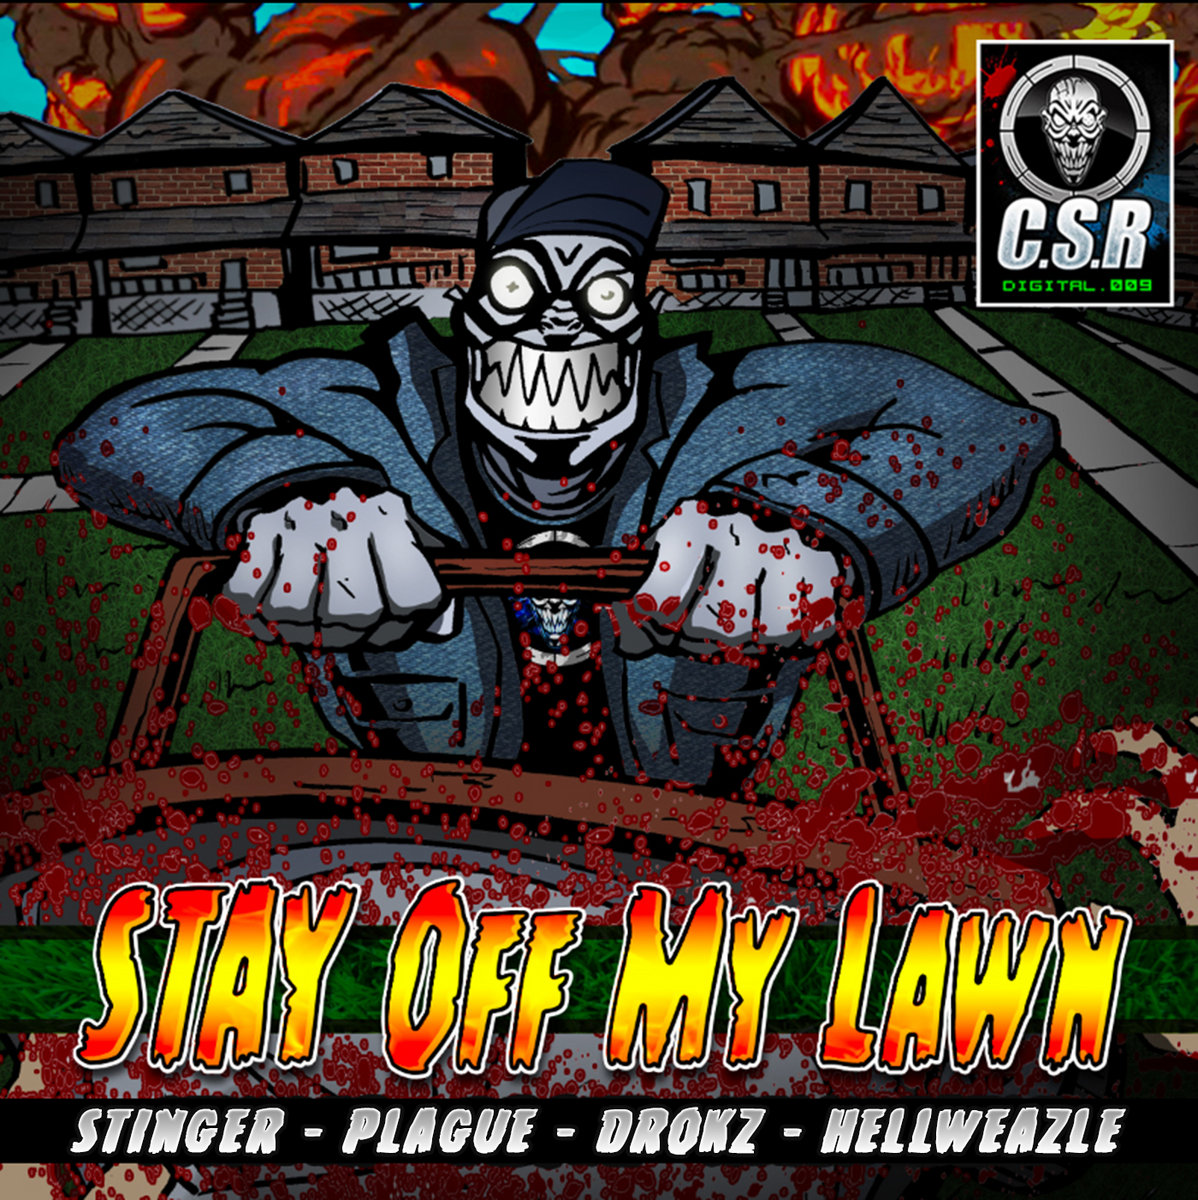 stay off my lawn csr digi 009 core in one recordings